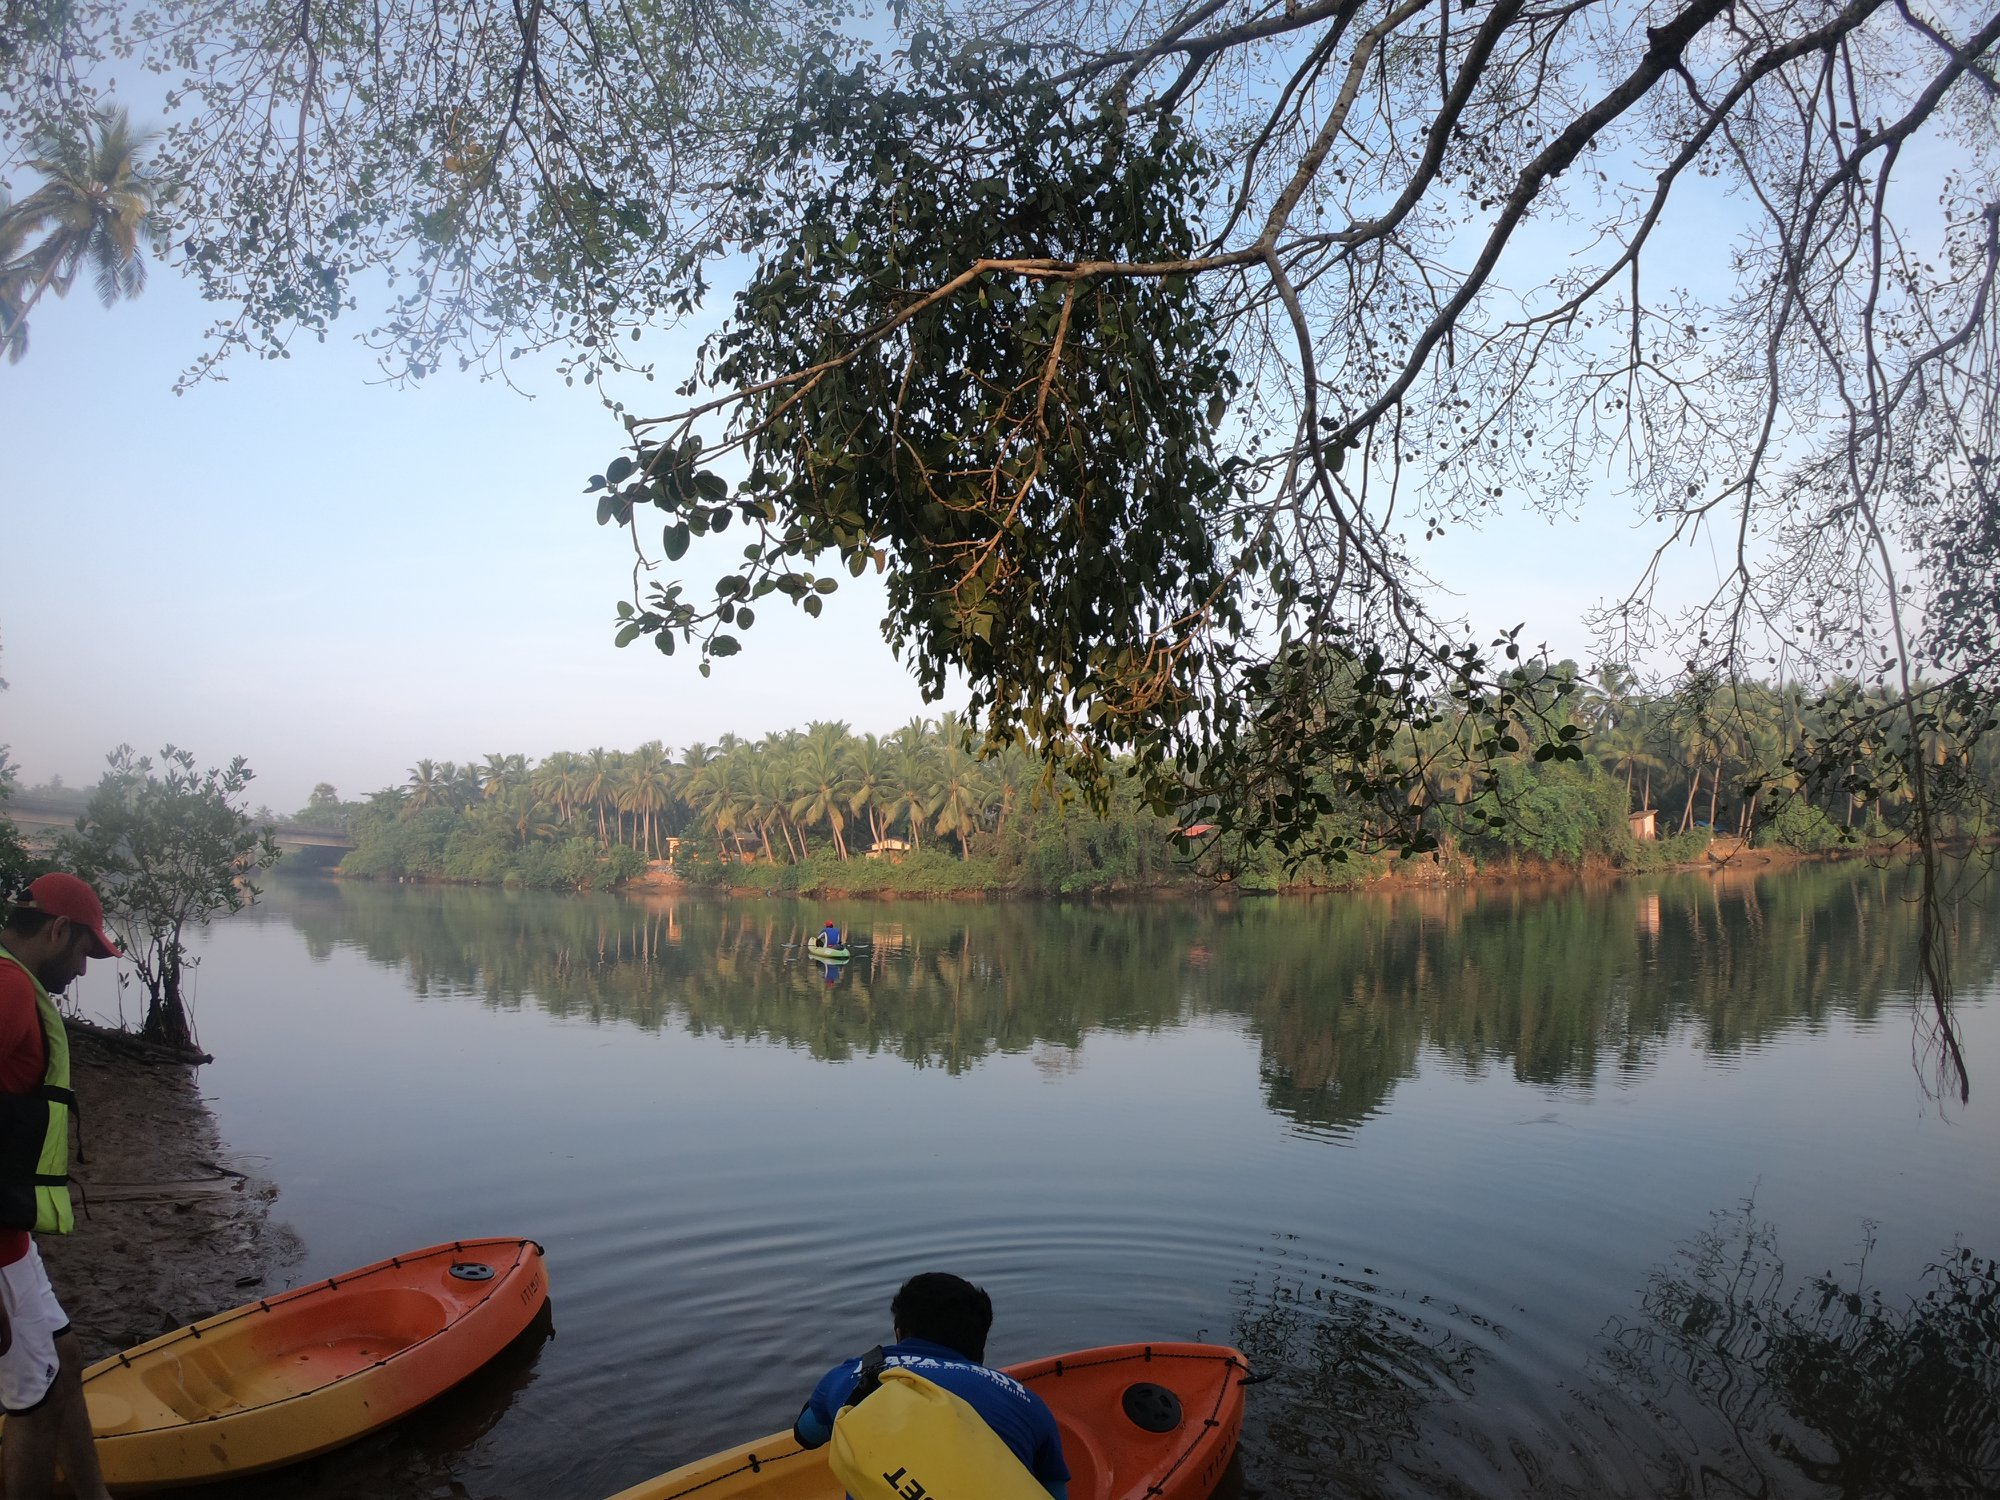 Camp Site-Kayak Parking on Shambhavi River (Mulki-Karnataka)